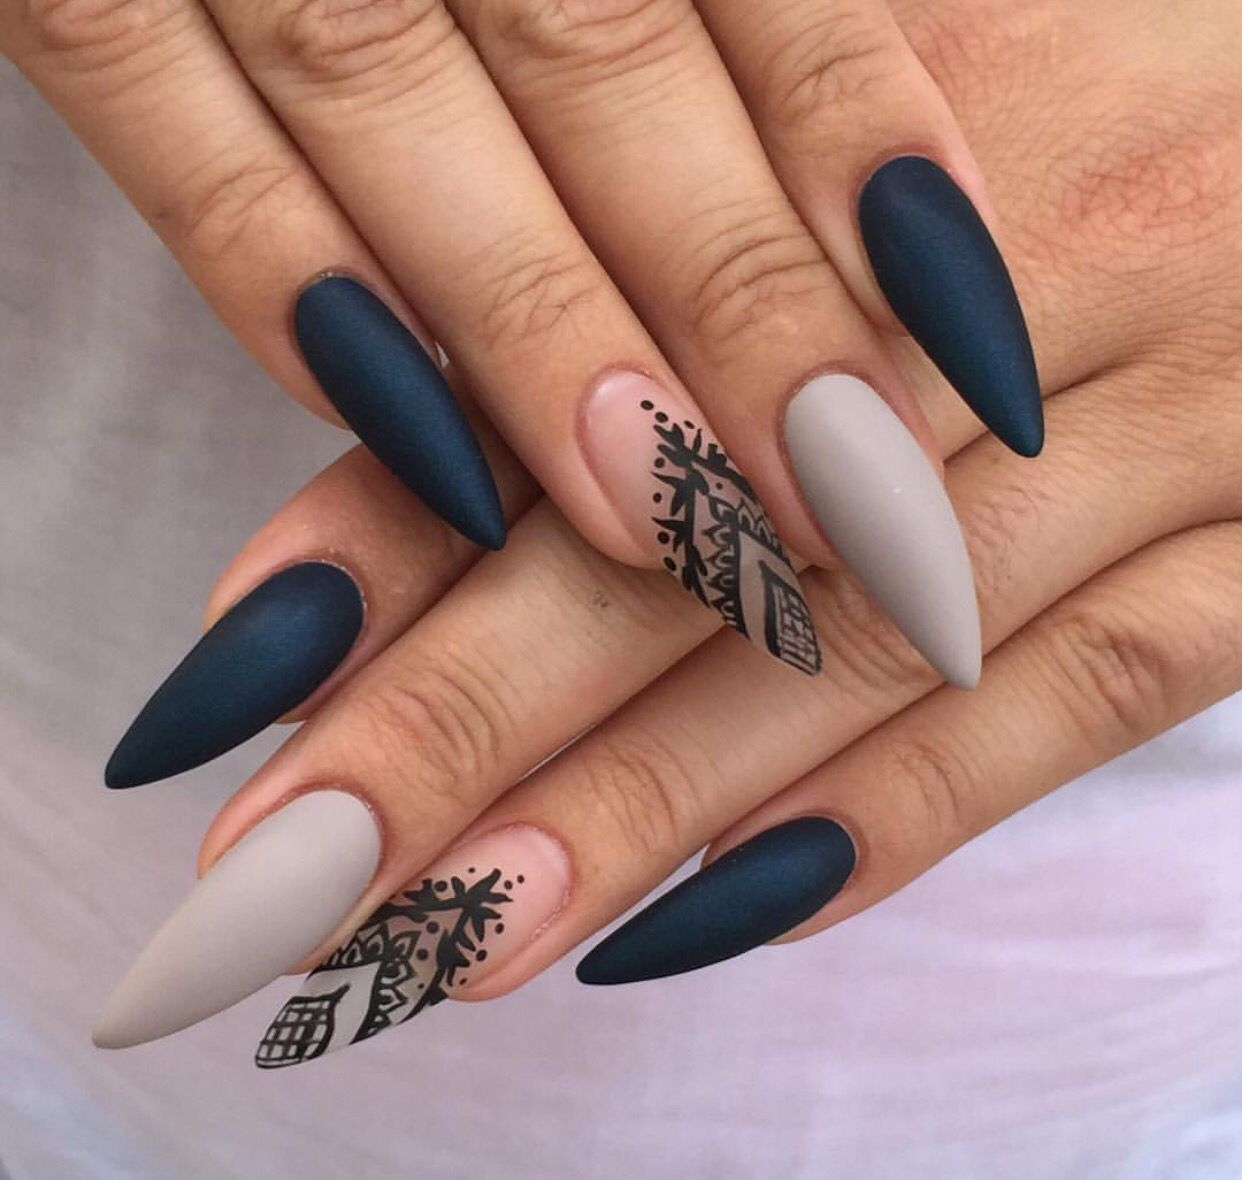 I Like The Design But Not Stilettos Acrylic Nails Coffin Mattegrey